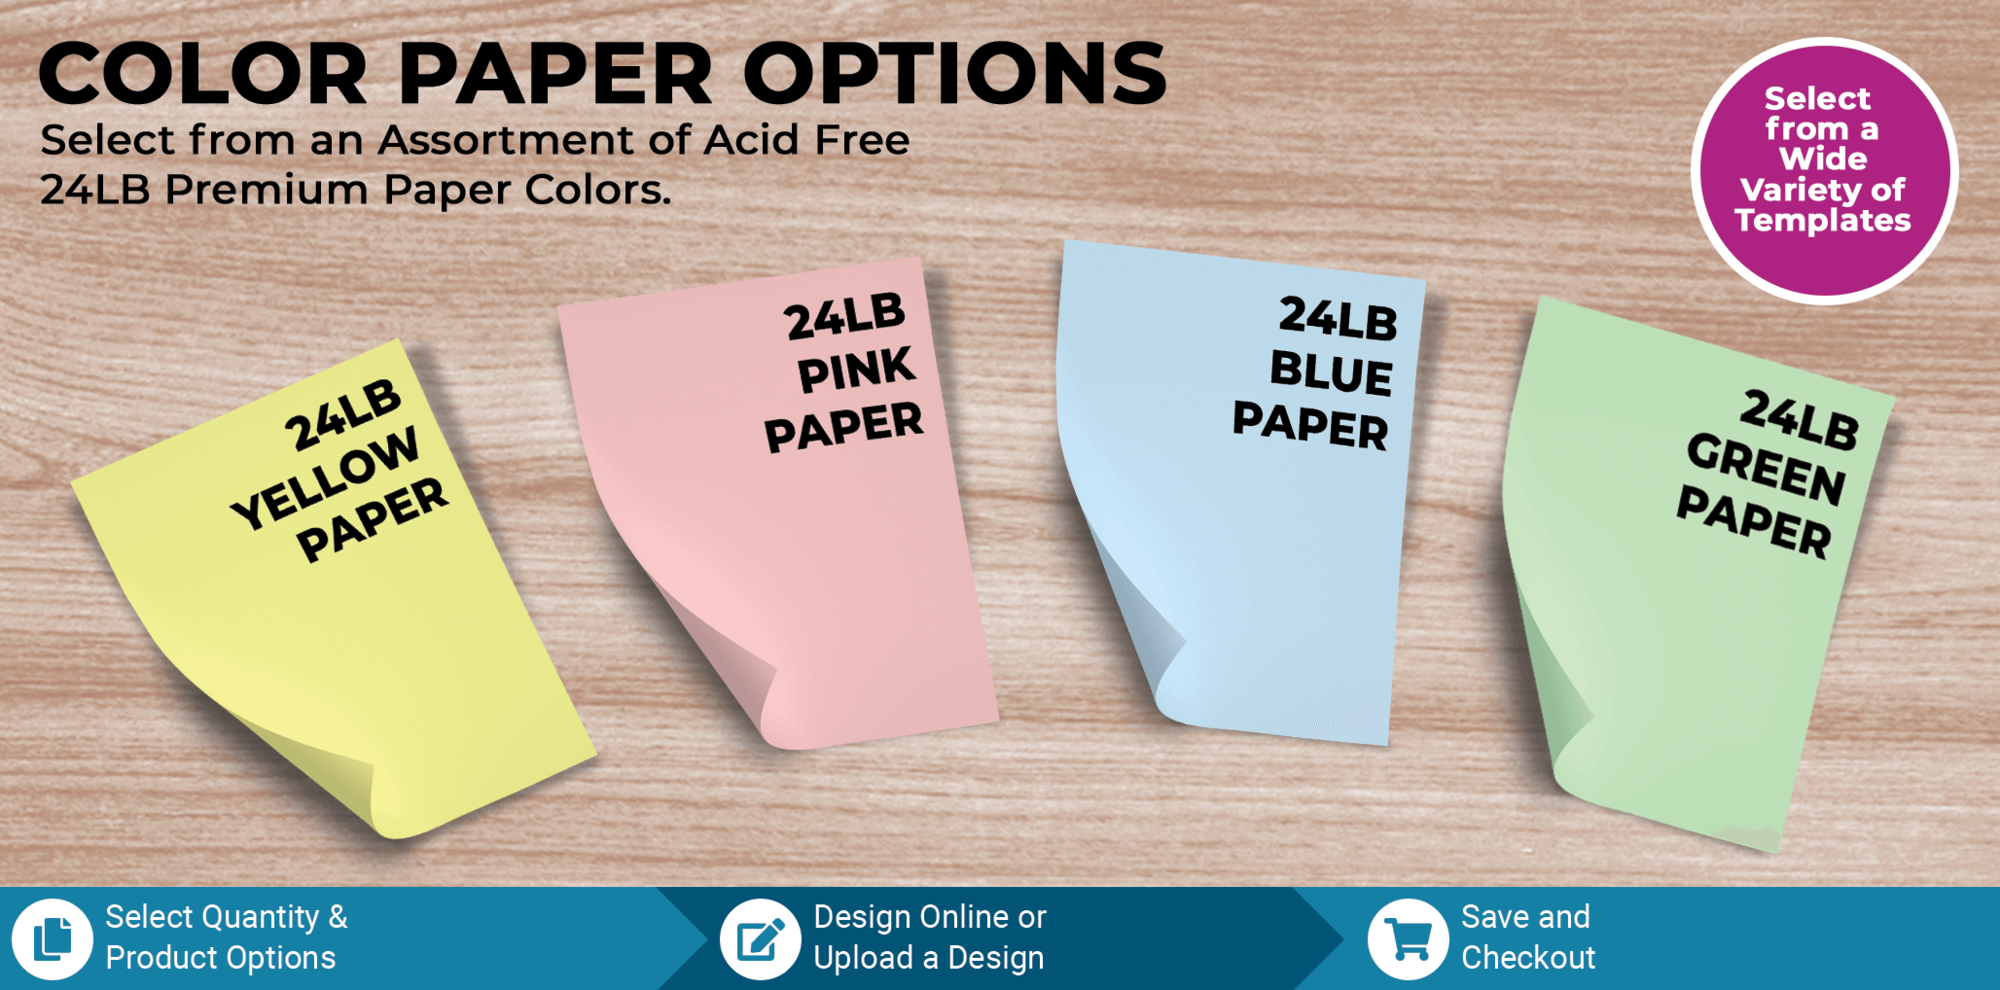 https://printpps.com/images/products_gallery_images/Custom-Sticky-Notes_Product-Page-Banner-227.png